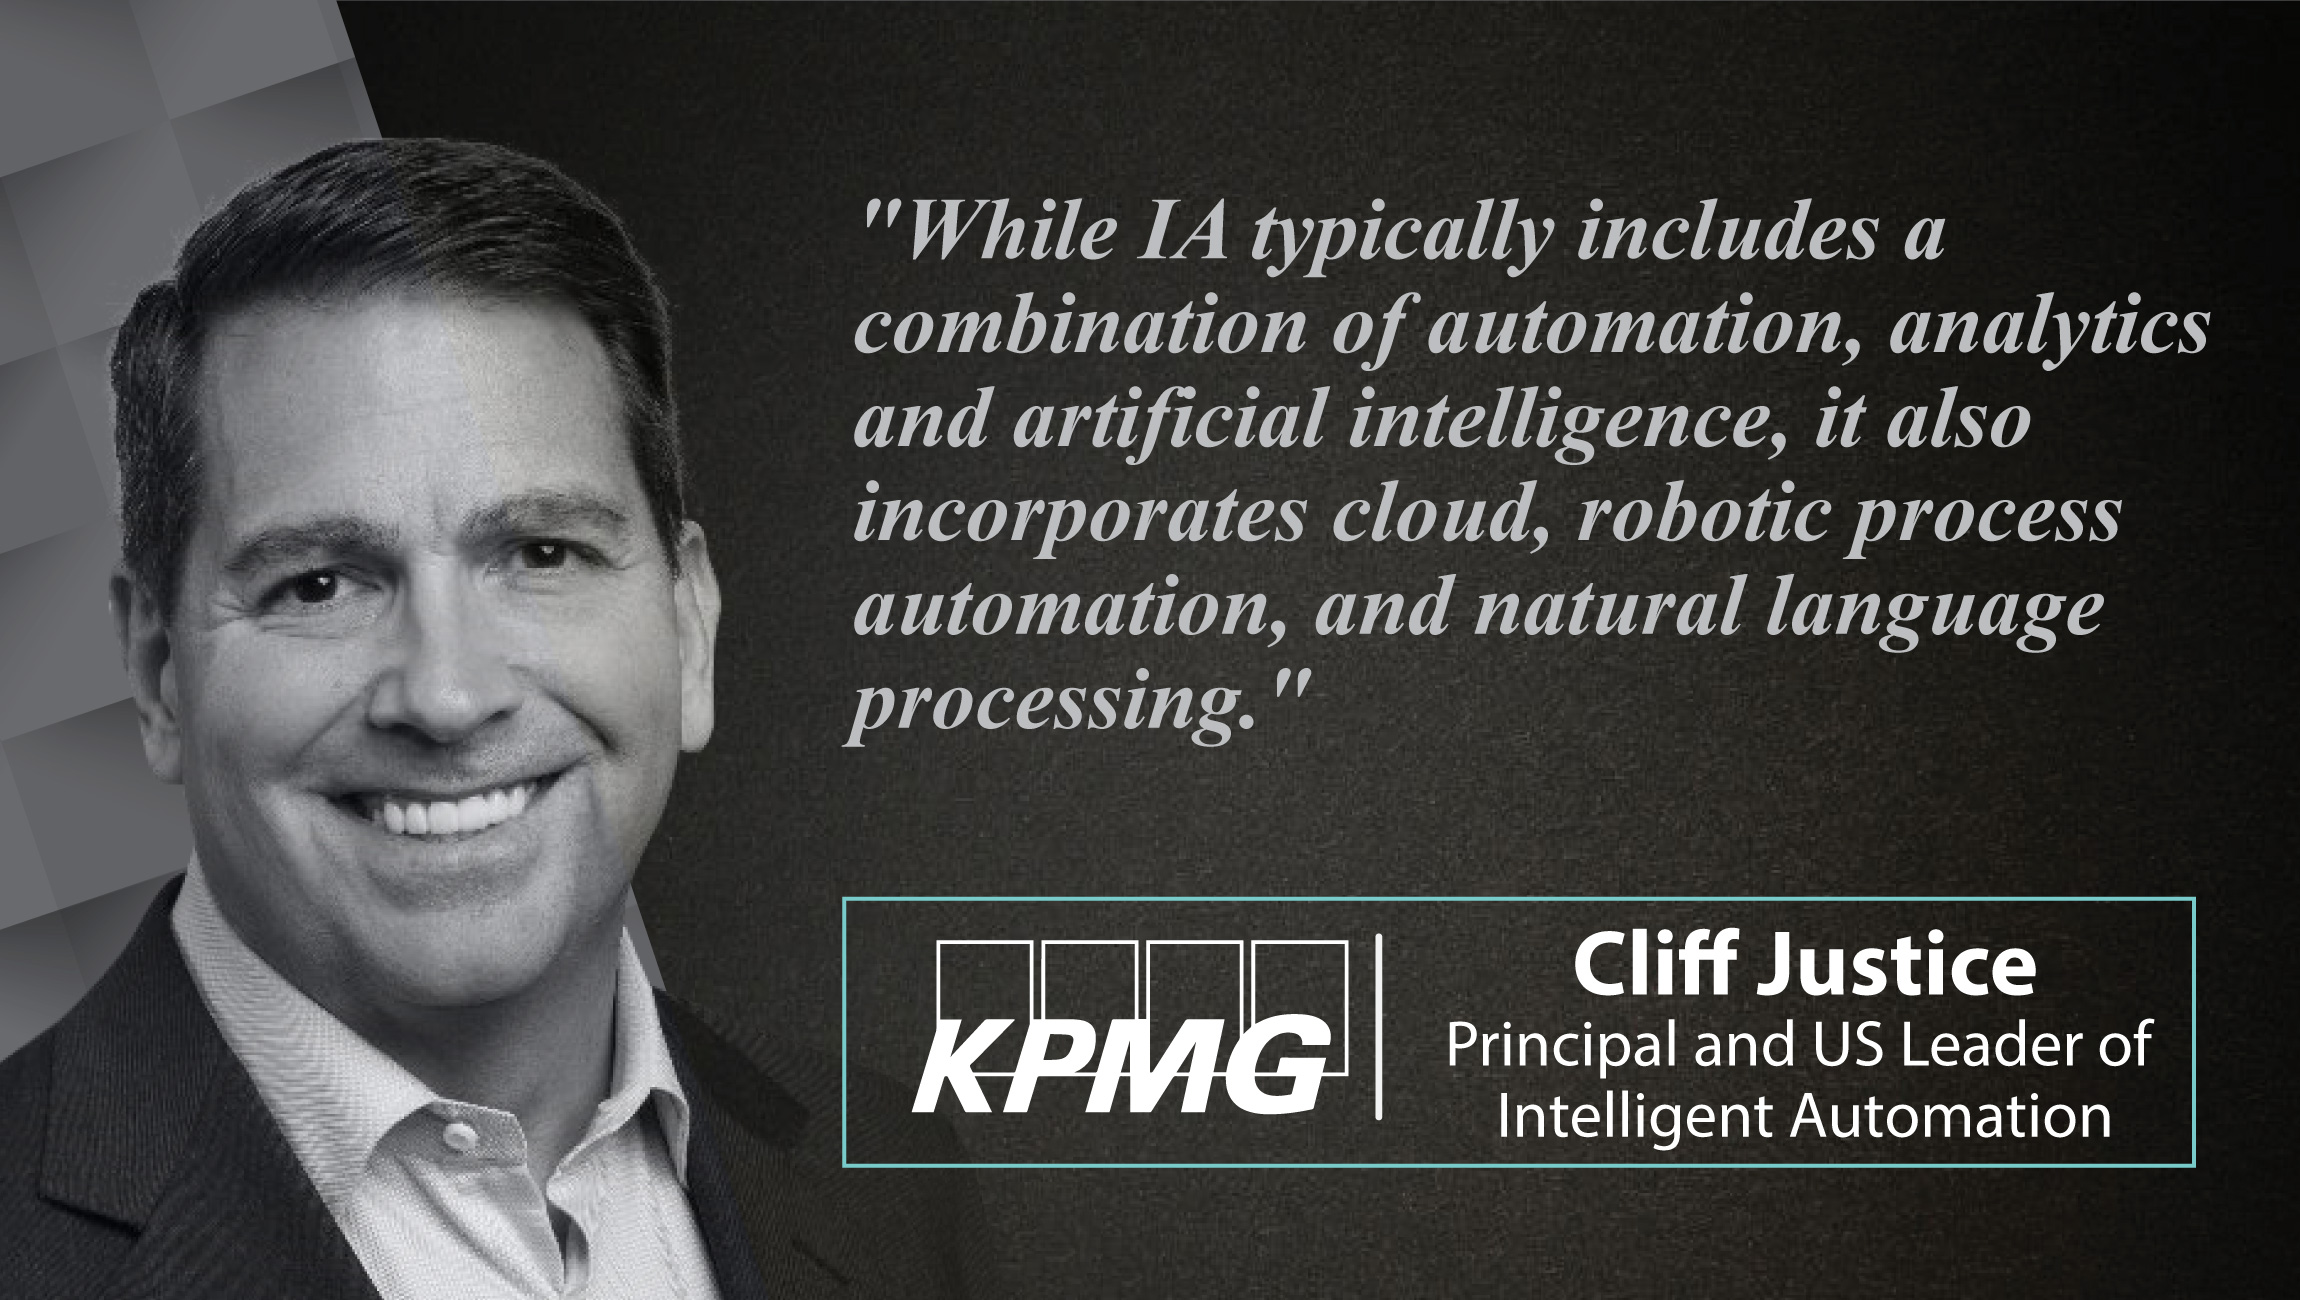 Cliff Justice, Principal and US Leader of Intelligent Automation- KPMG